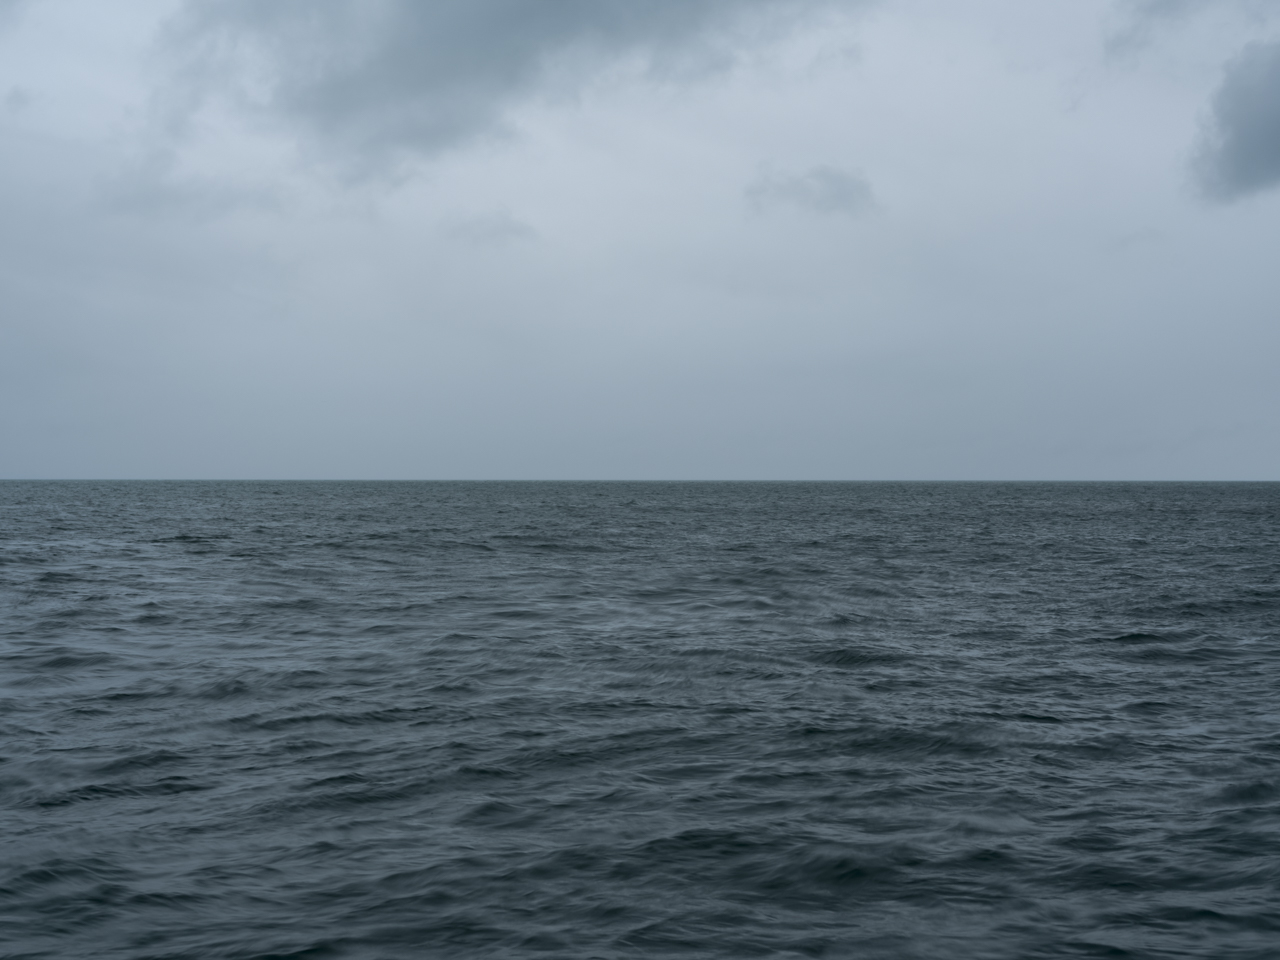 a darker day on Lake Michigan with heavy cloud cover and ominous water